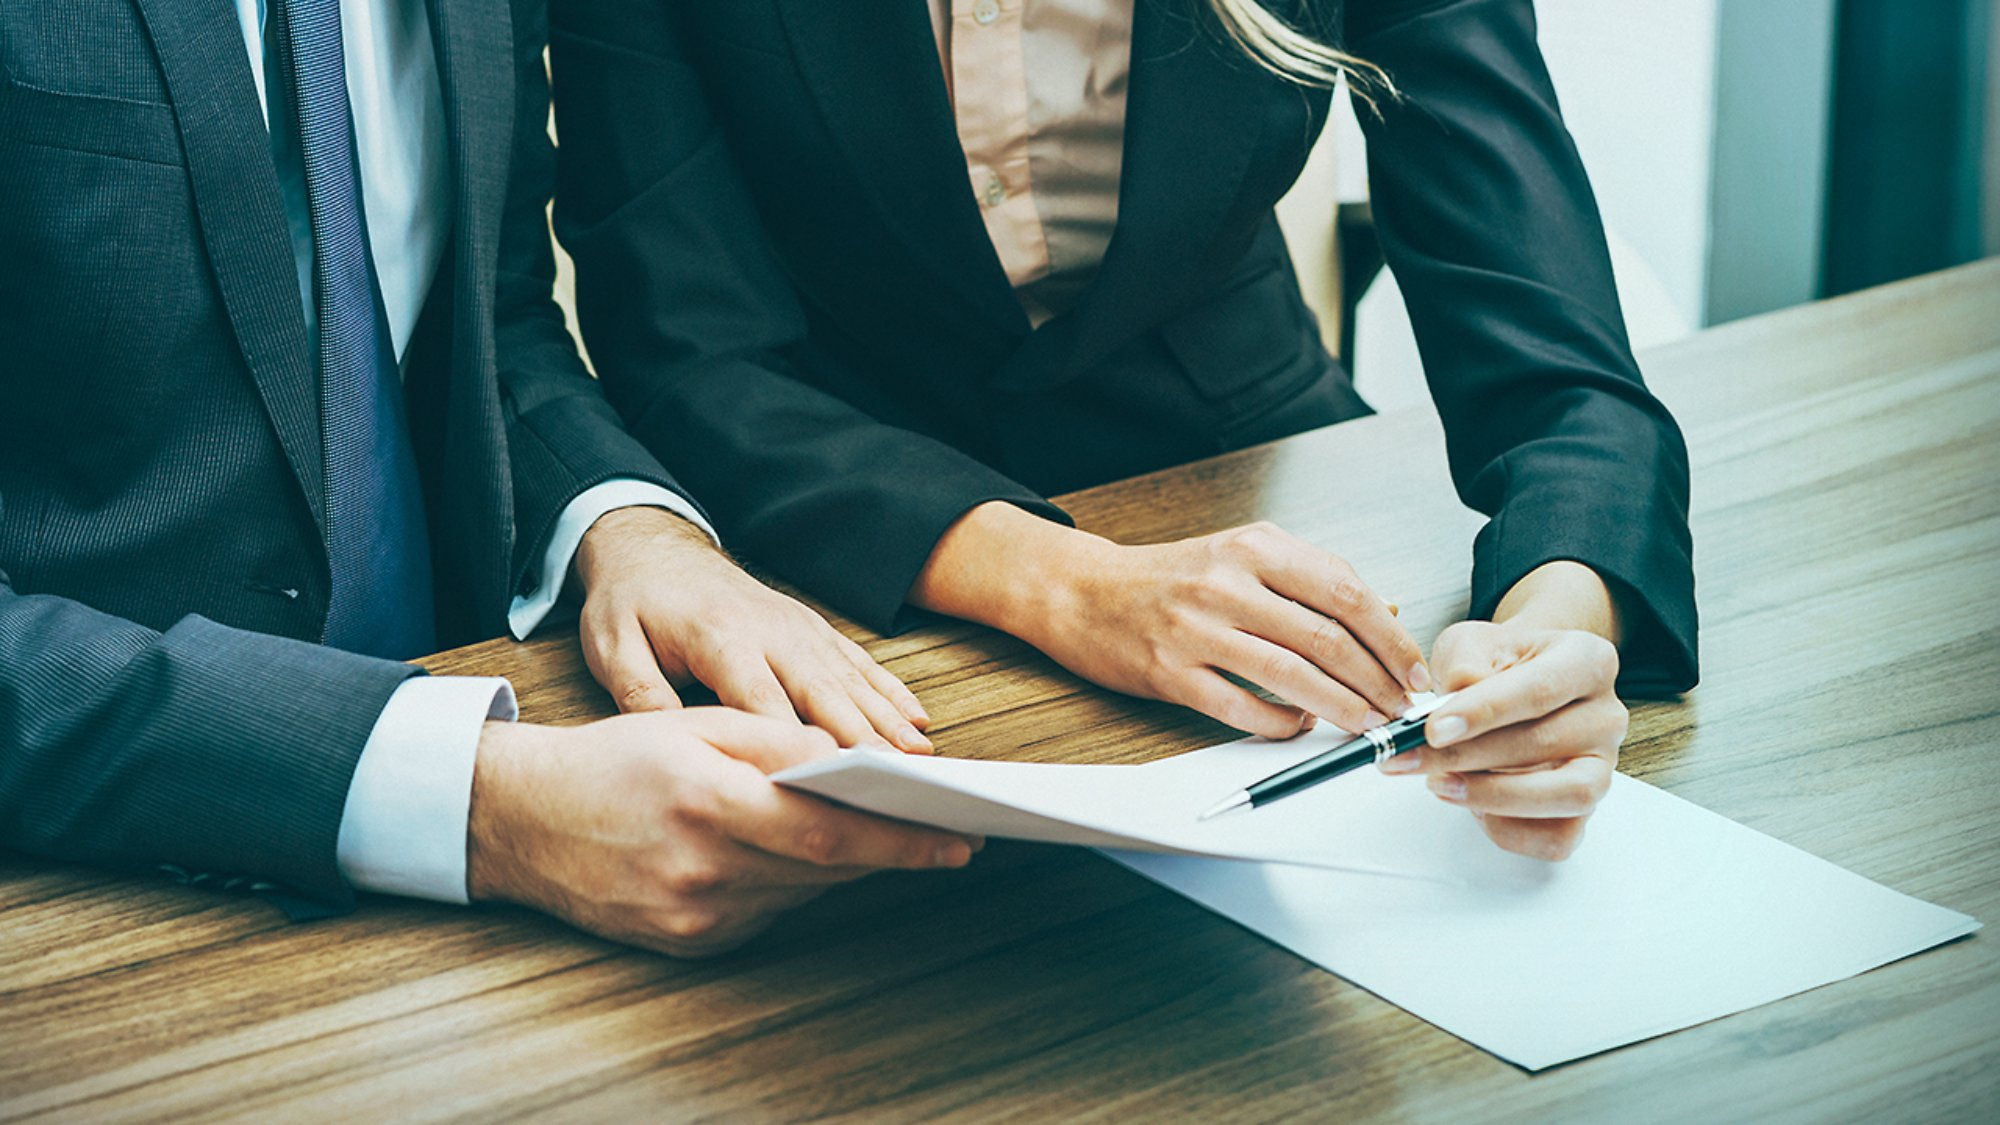 What Are The Benefits Of Fully Vetting Staff Or Prospective Employees?